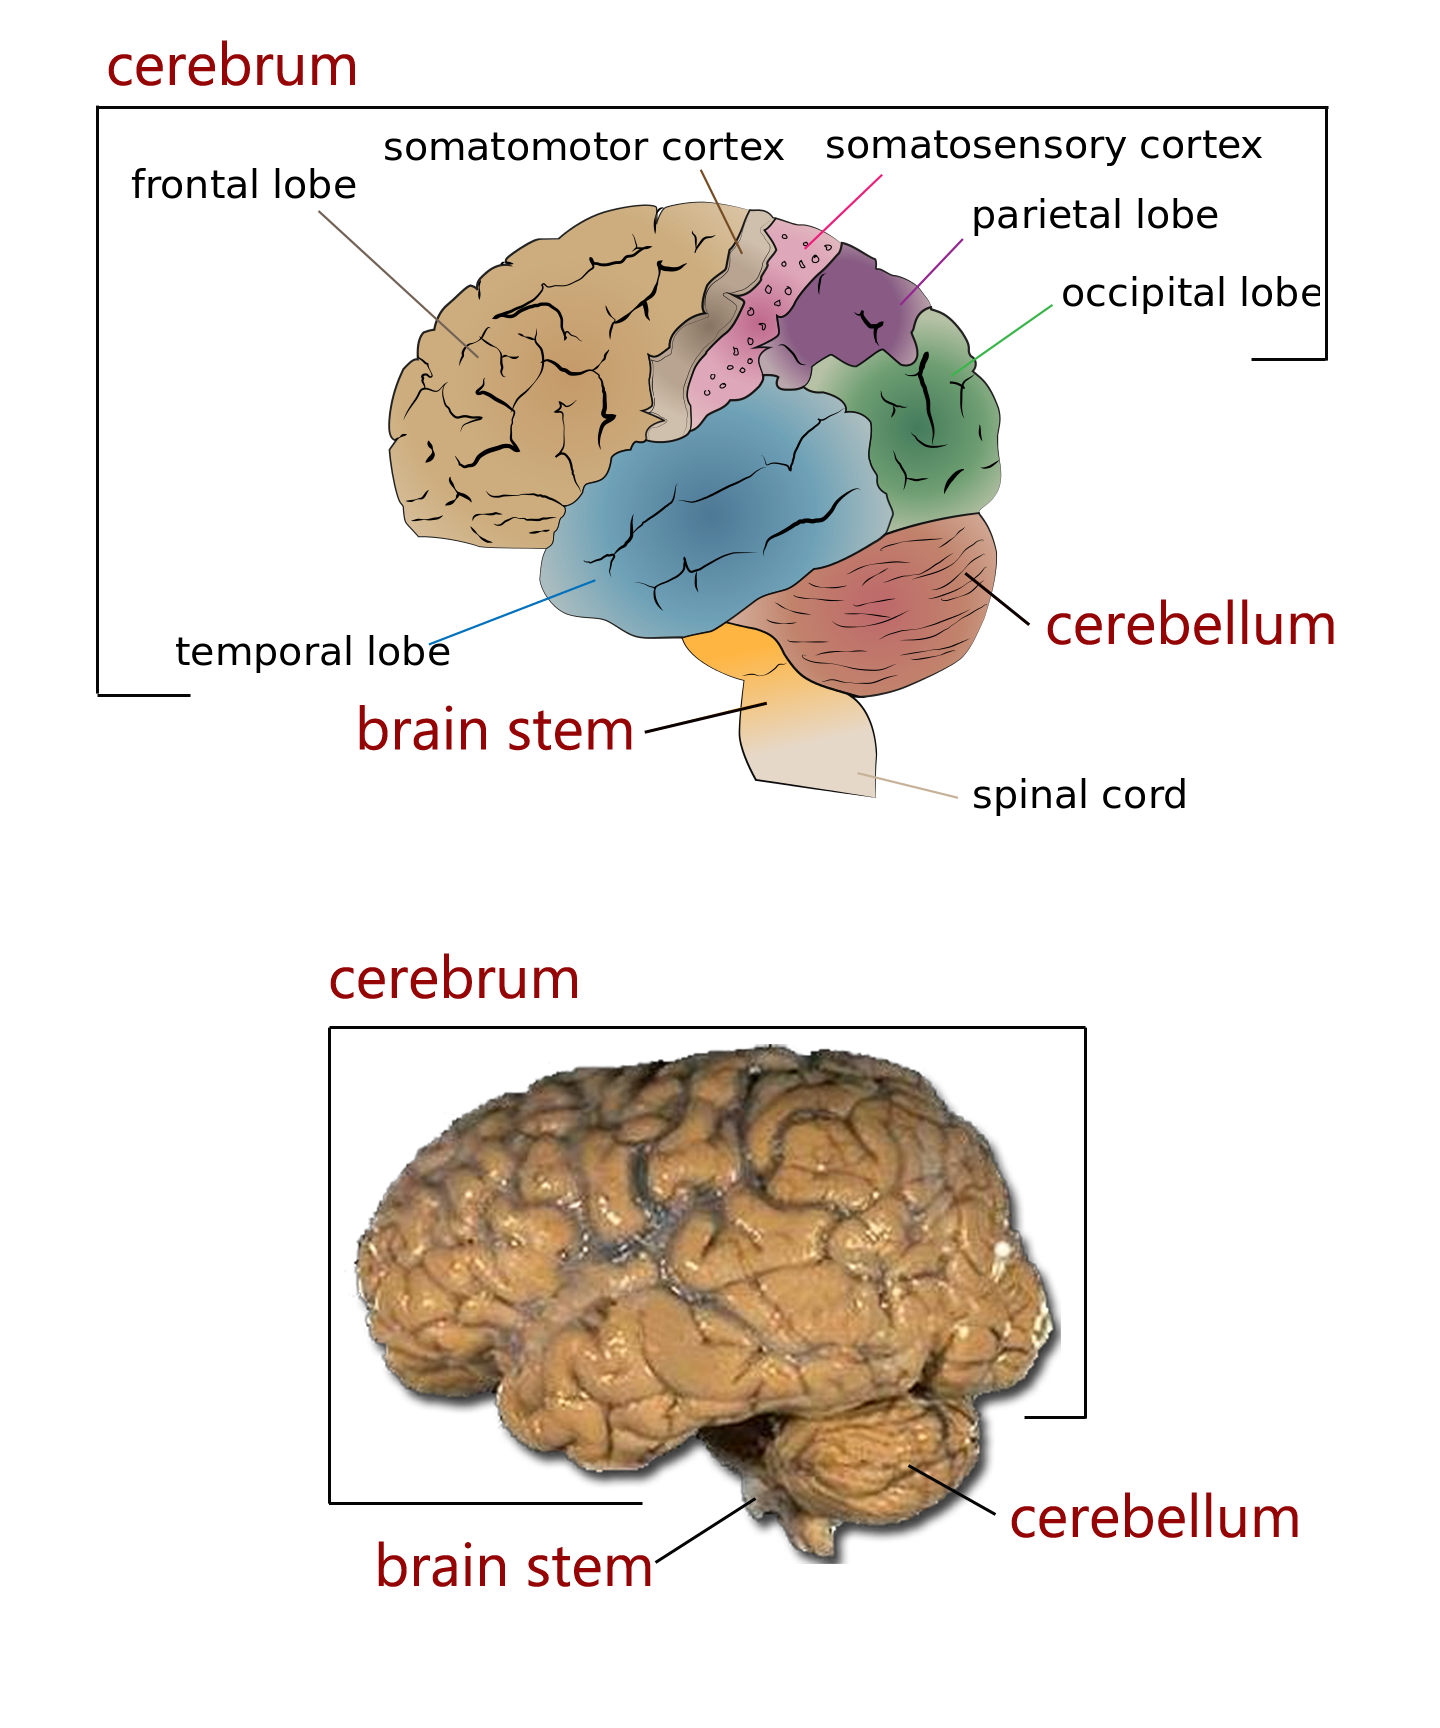 the major regions of the brain